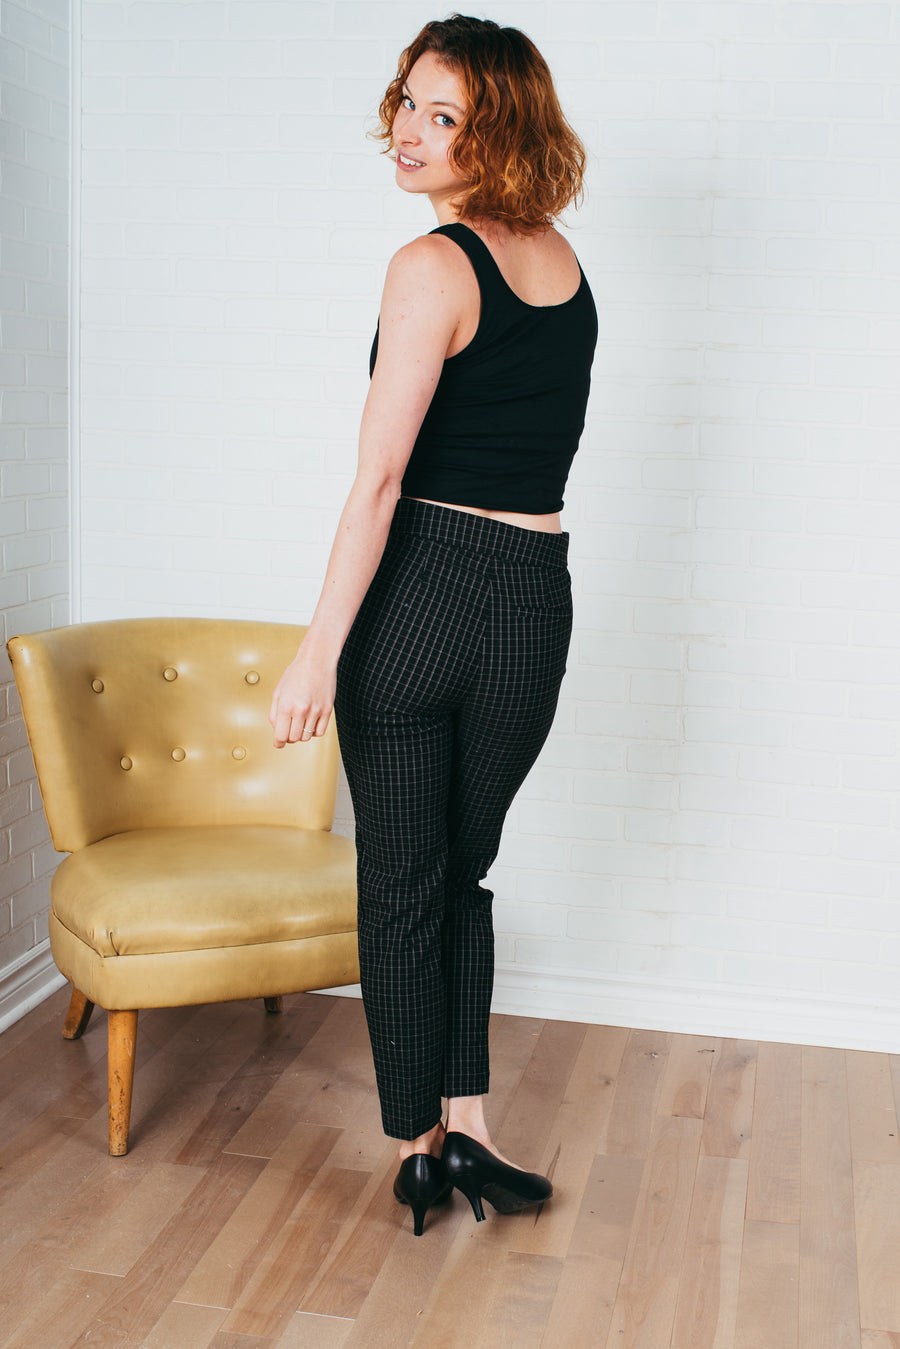 Le tricot col montant/ High neck knitting sweater